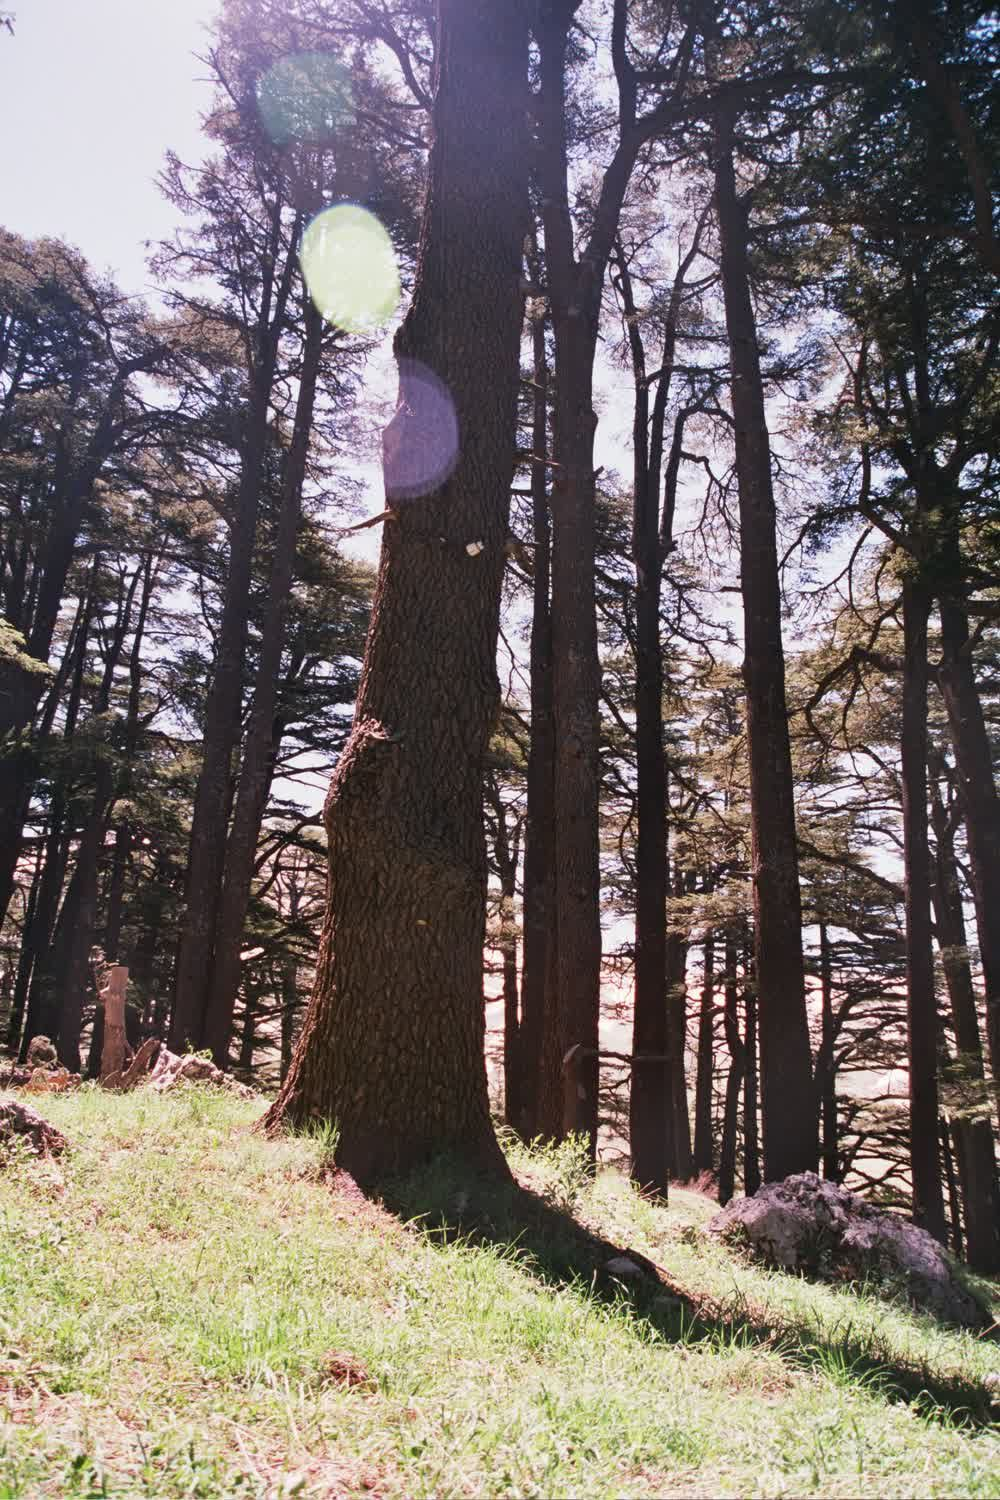 title: So Many Tall Trees in Forest Nature